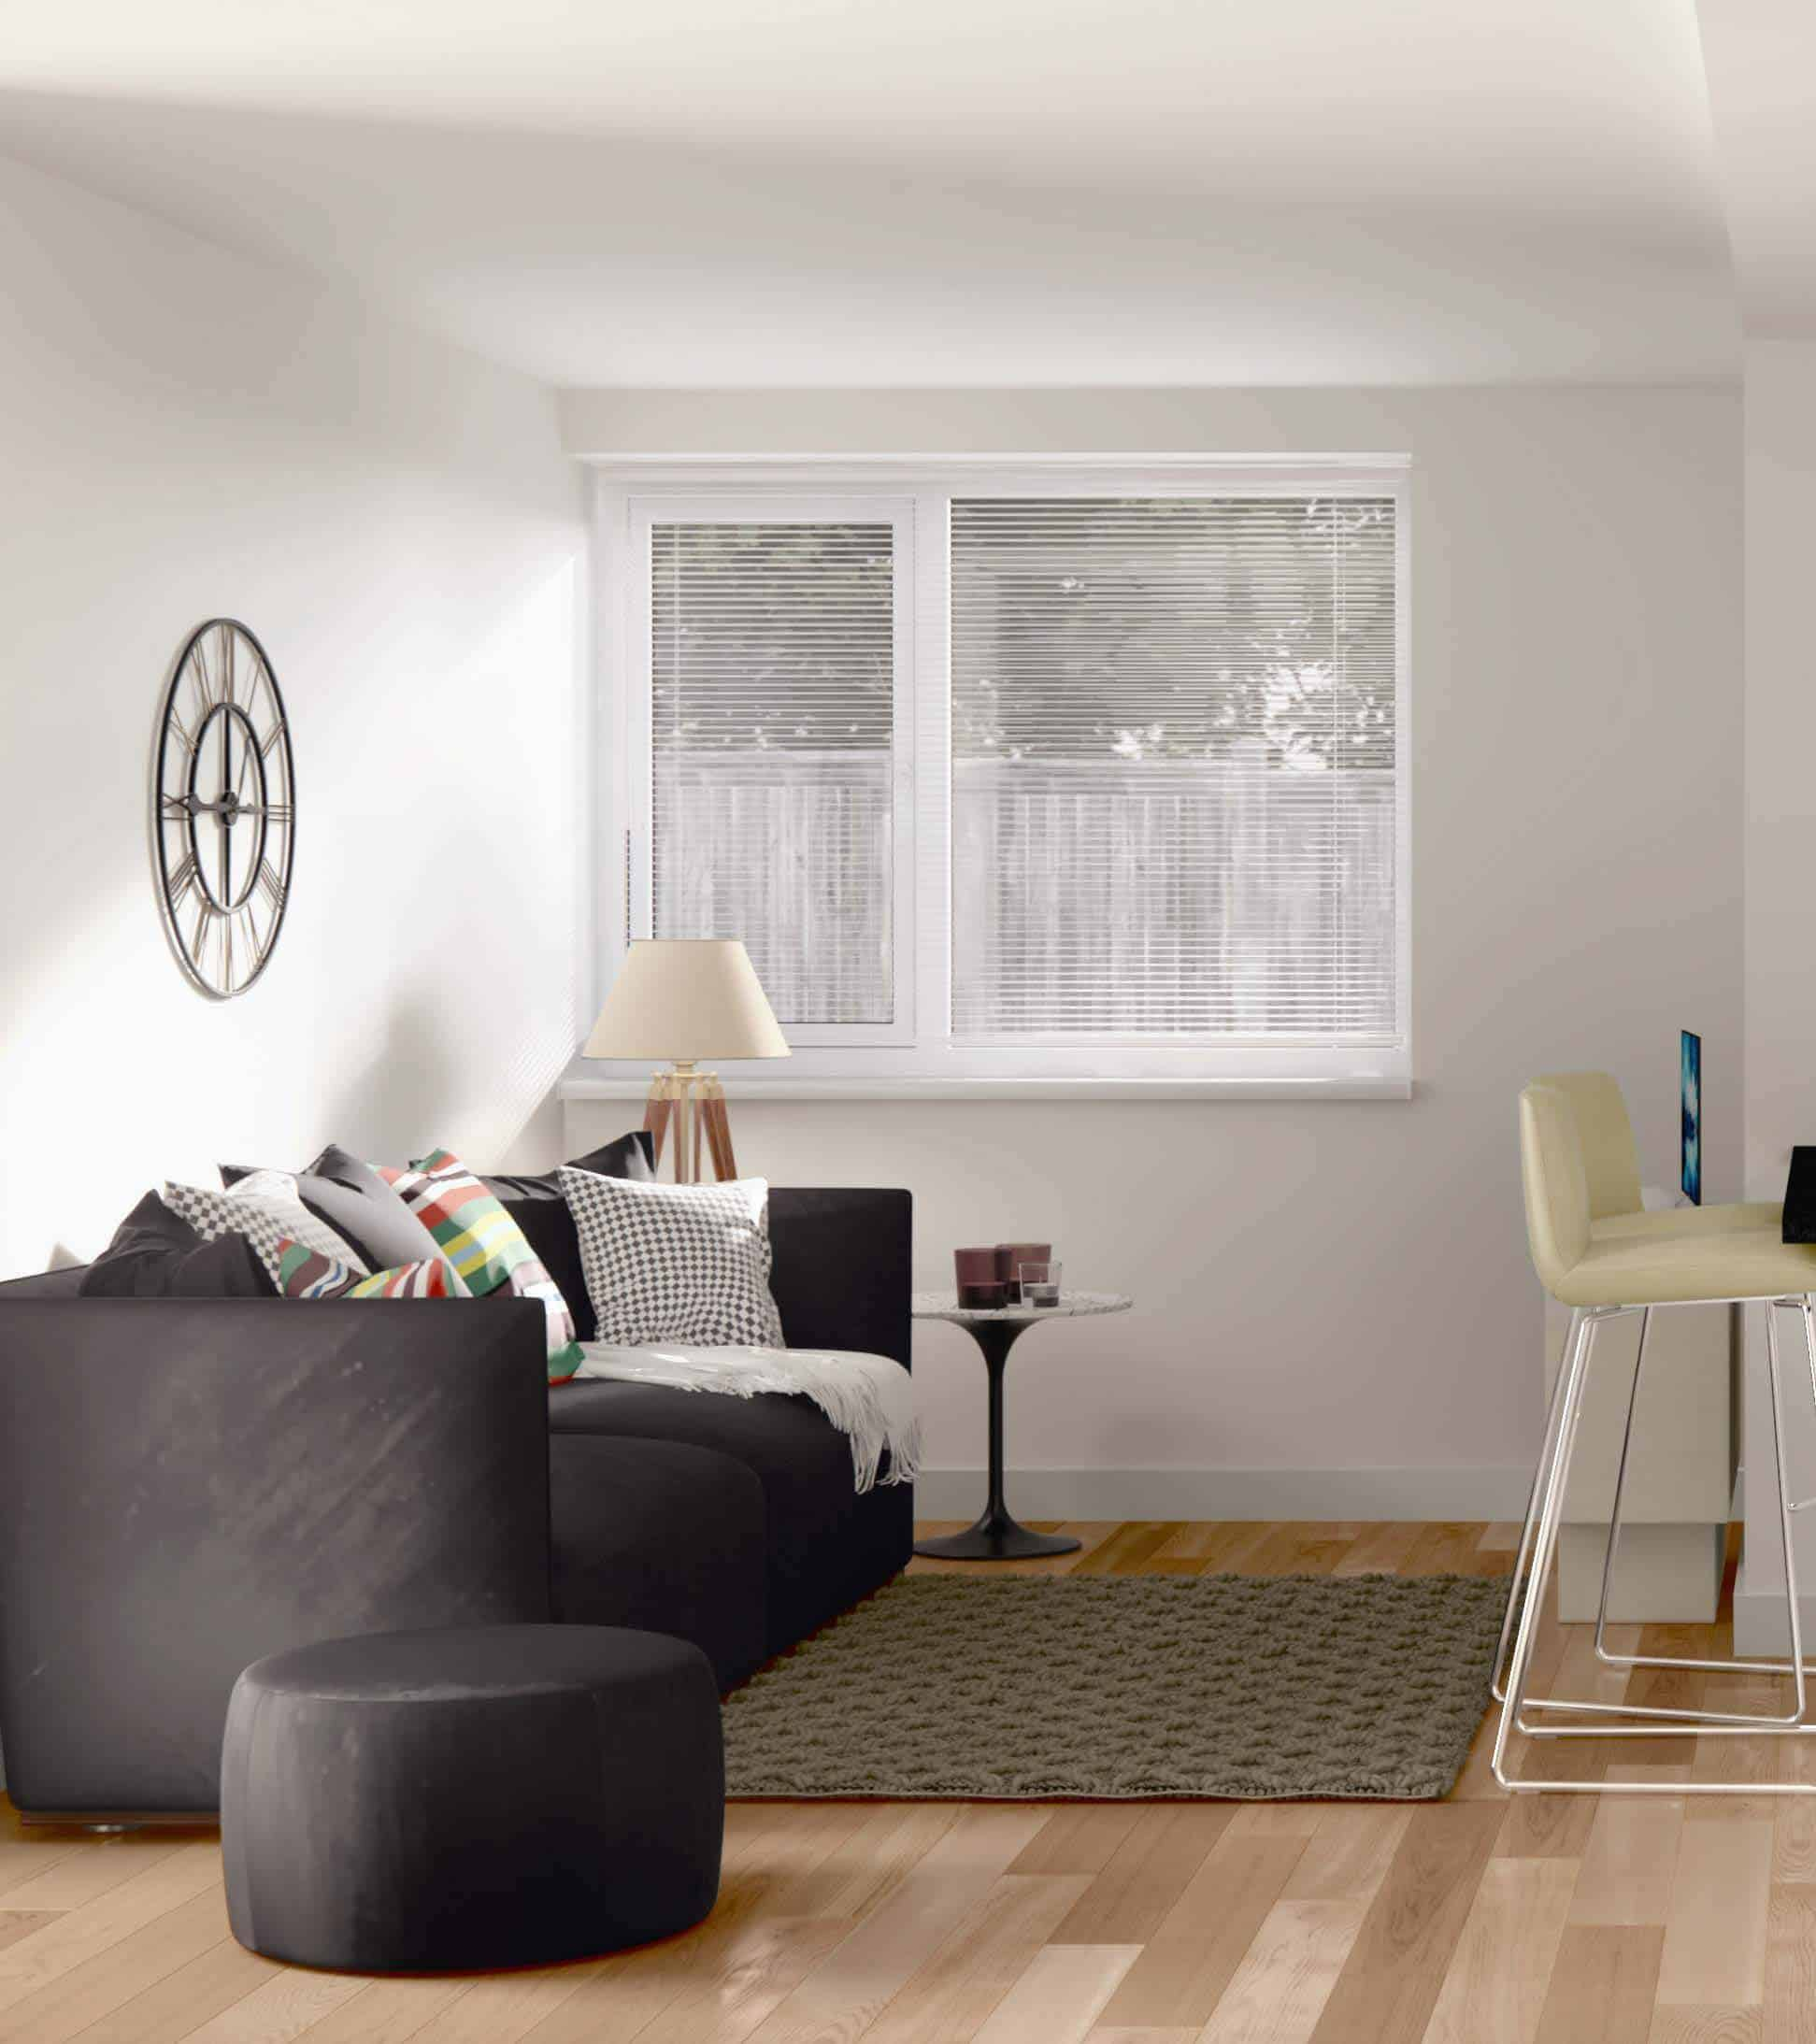 Prospect House Farnham Interior: Commercial to Residential Property Conversion Apartment